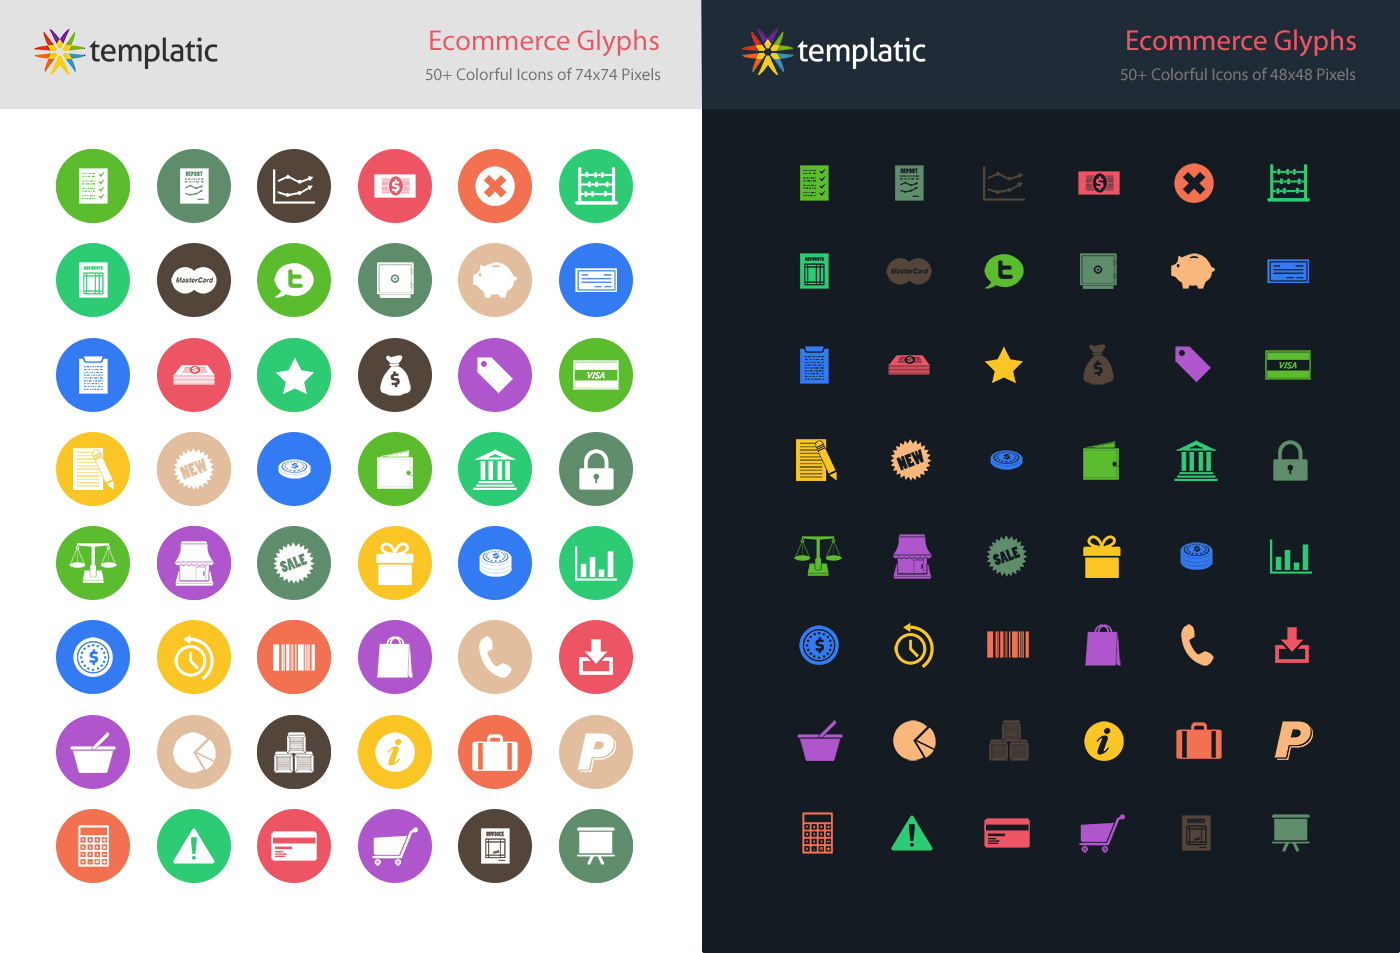 templatic ecommerce glyphs iconset